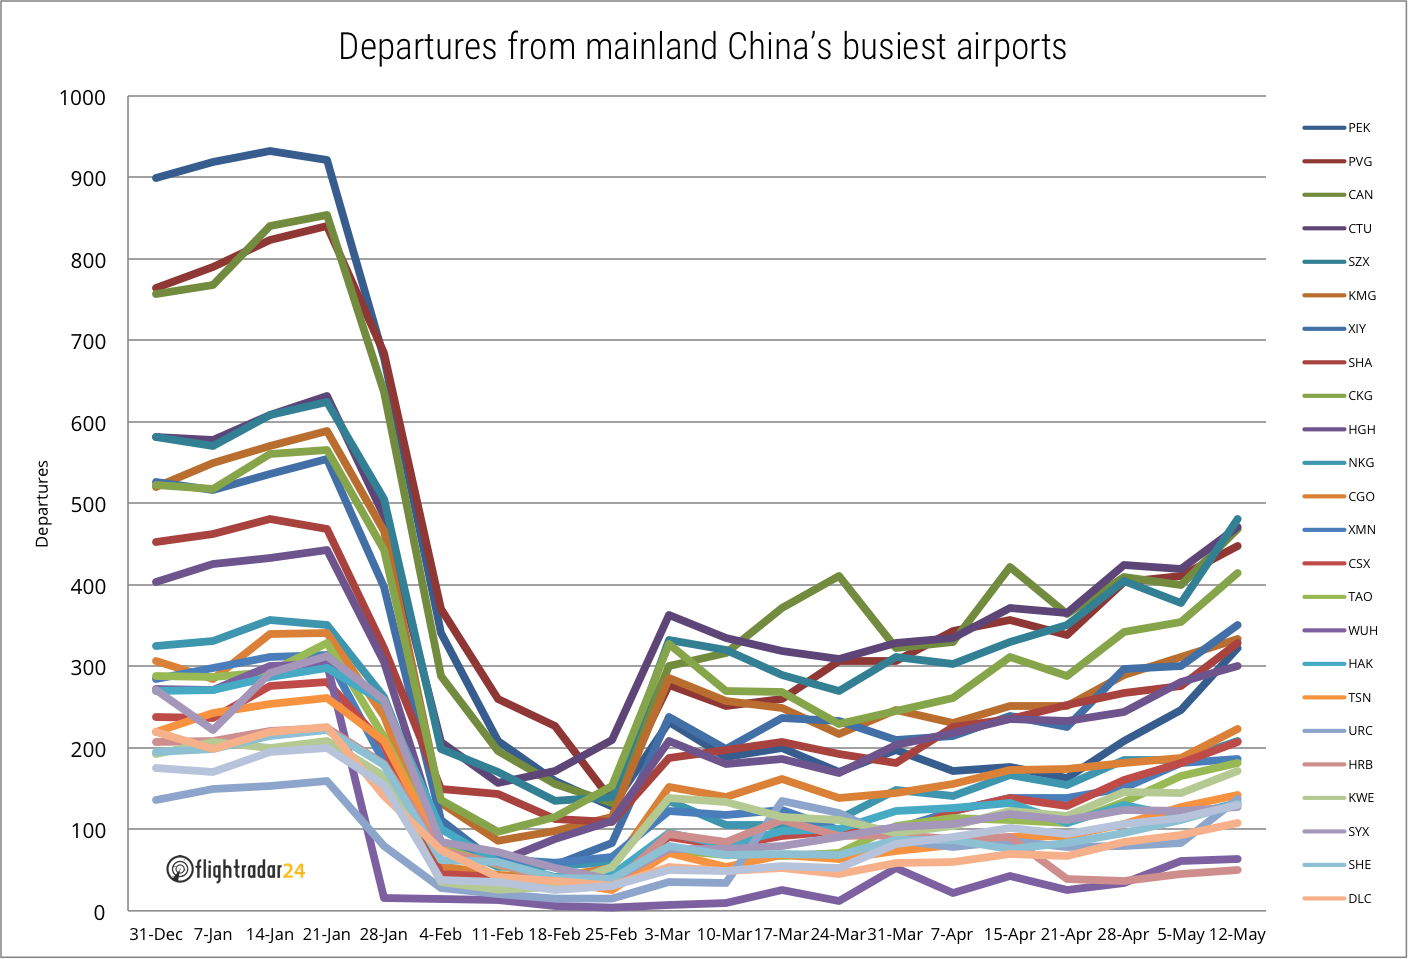 Top 25 Mainland China Depatures by Airport through 12 May